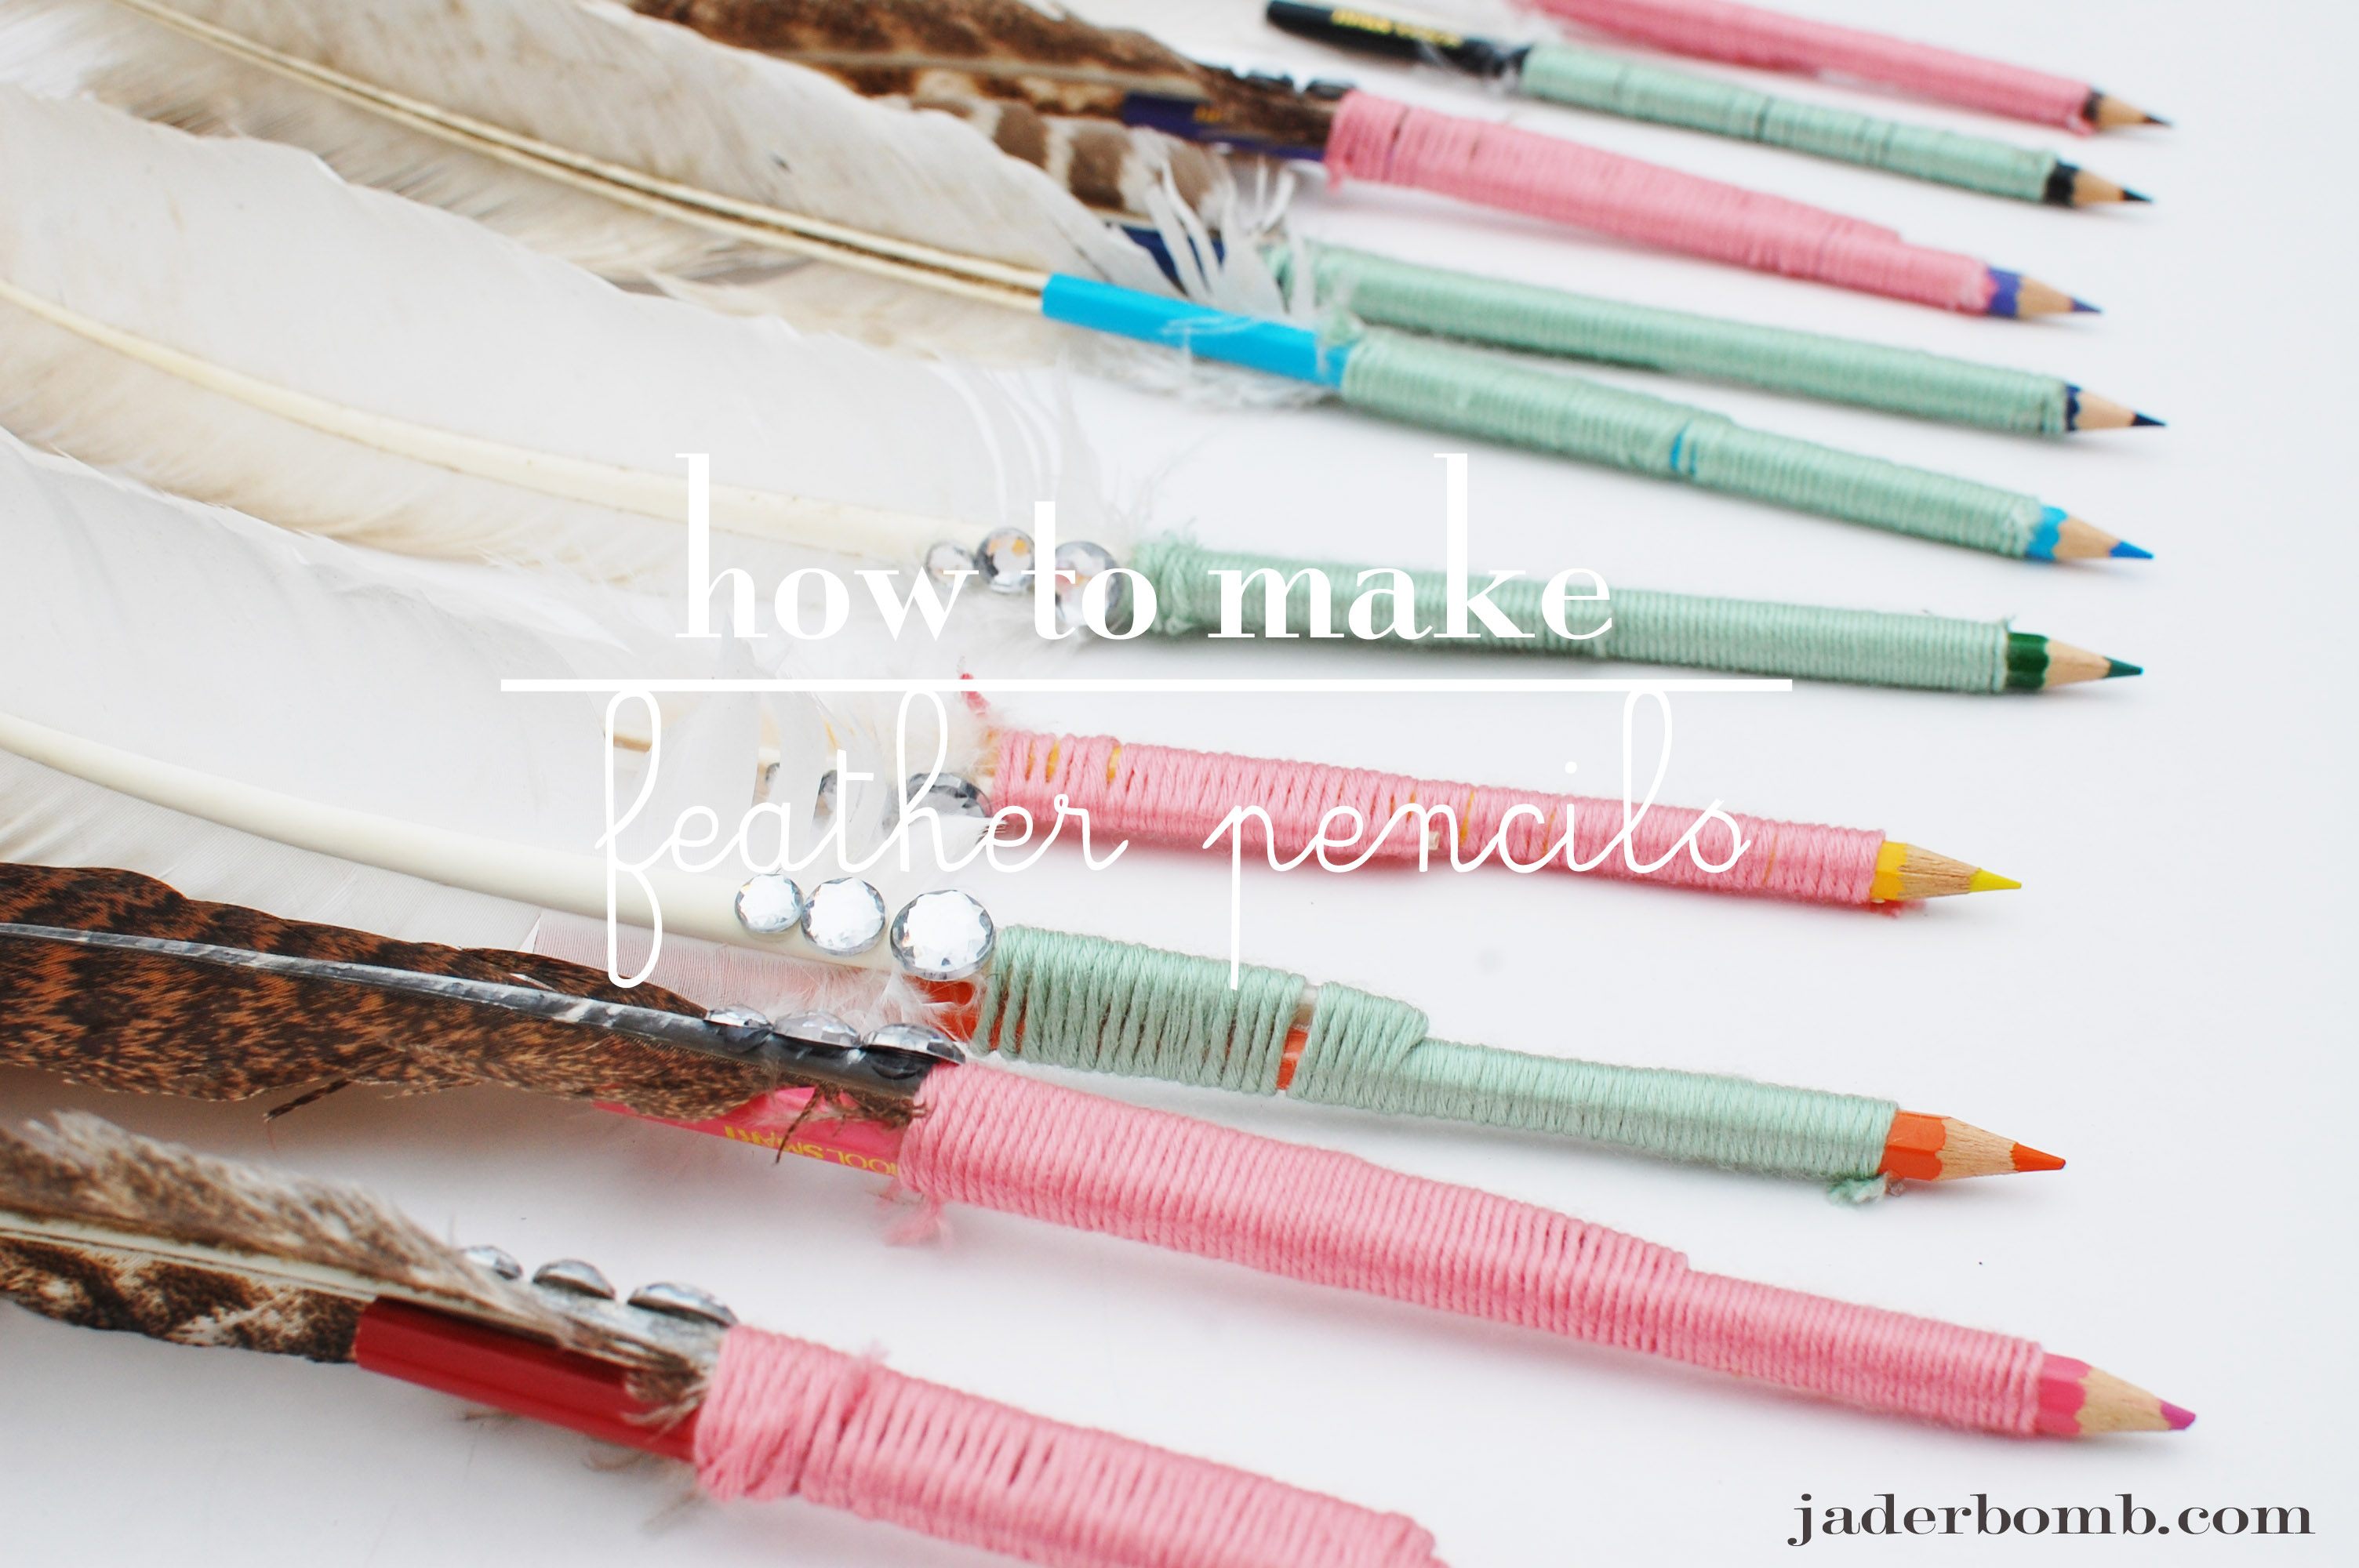 How to make a pencil 90